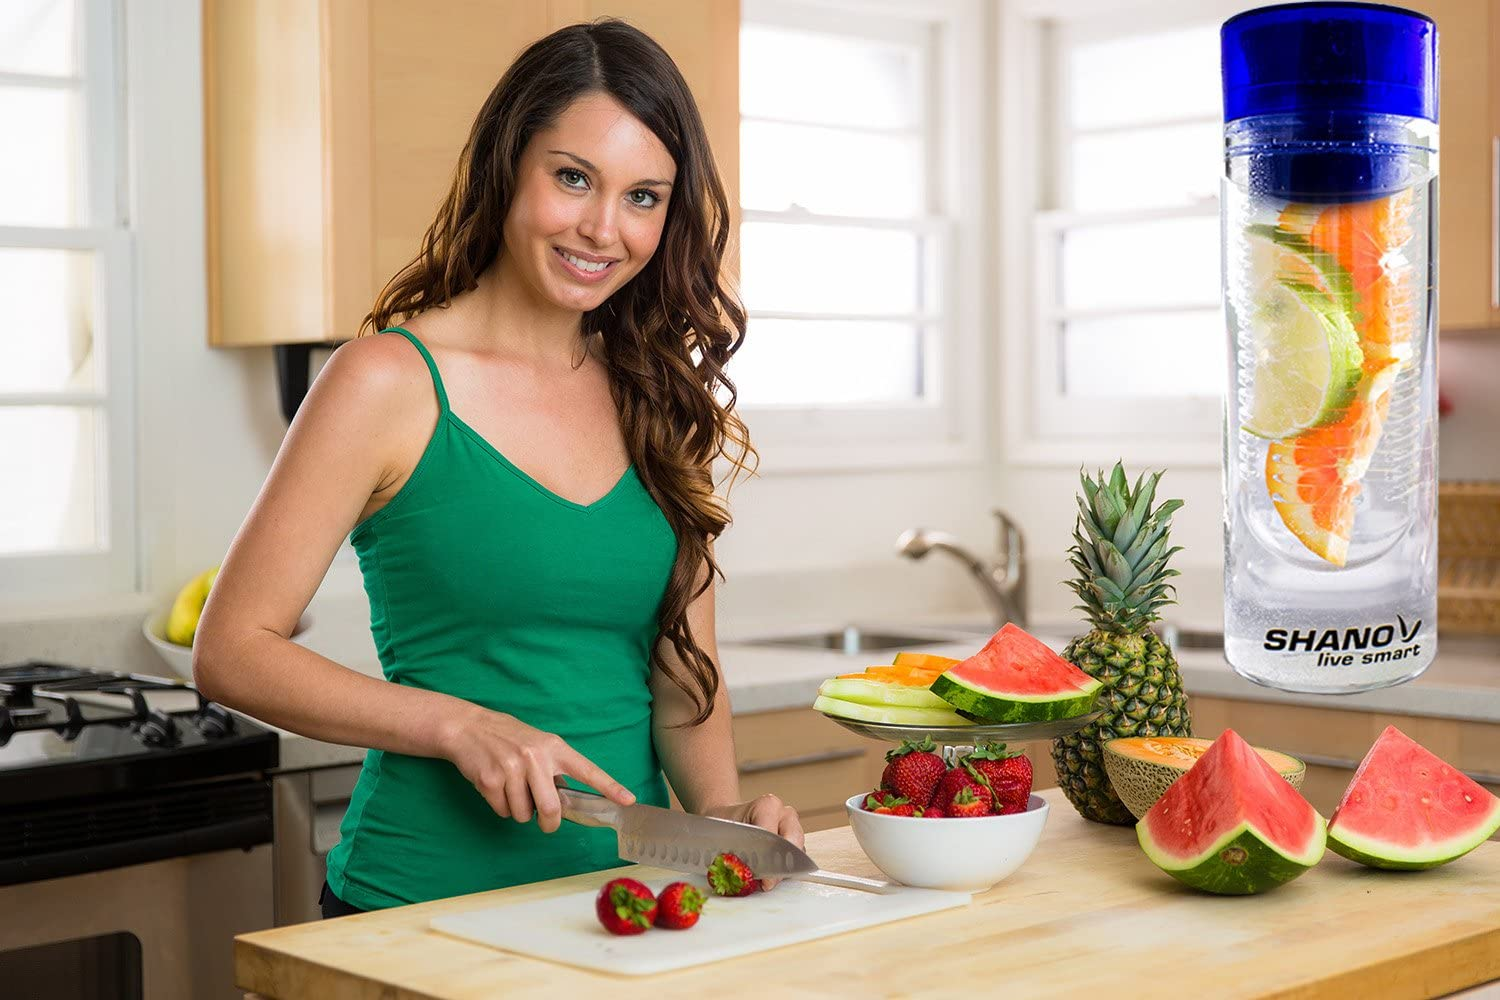 Infusion Water Bottle Enhances Fruit Water Flavor - Our Cool Water Bottles Blue Great Birthday Gifts for Her Better Health with Fruit and Water SHANO Live Smart Fruit Infused Water Bottle